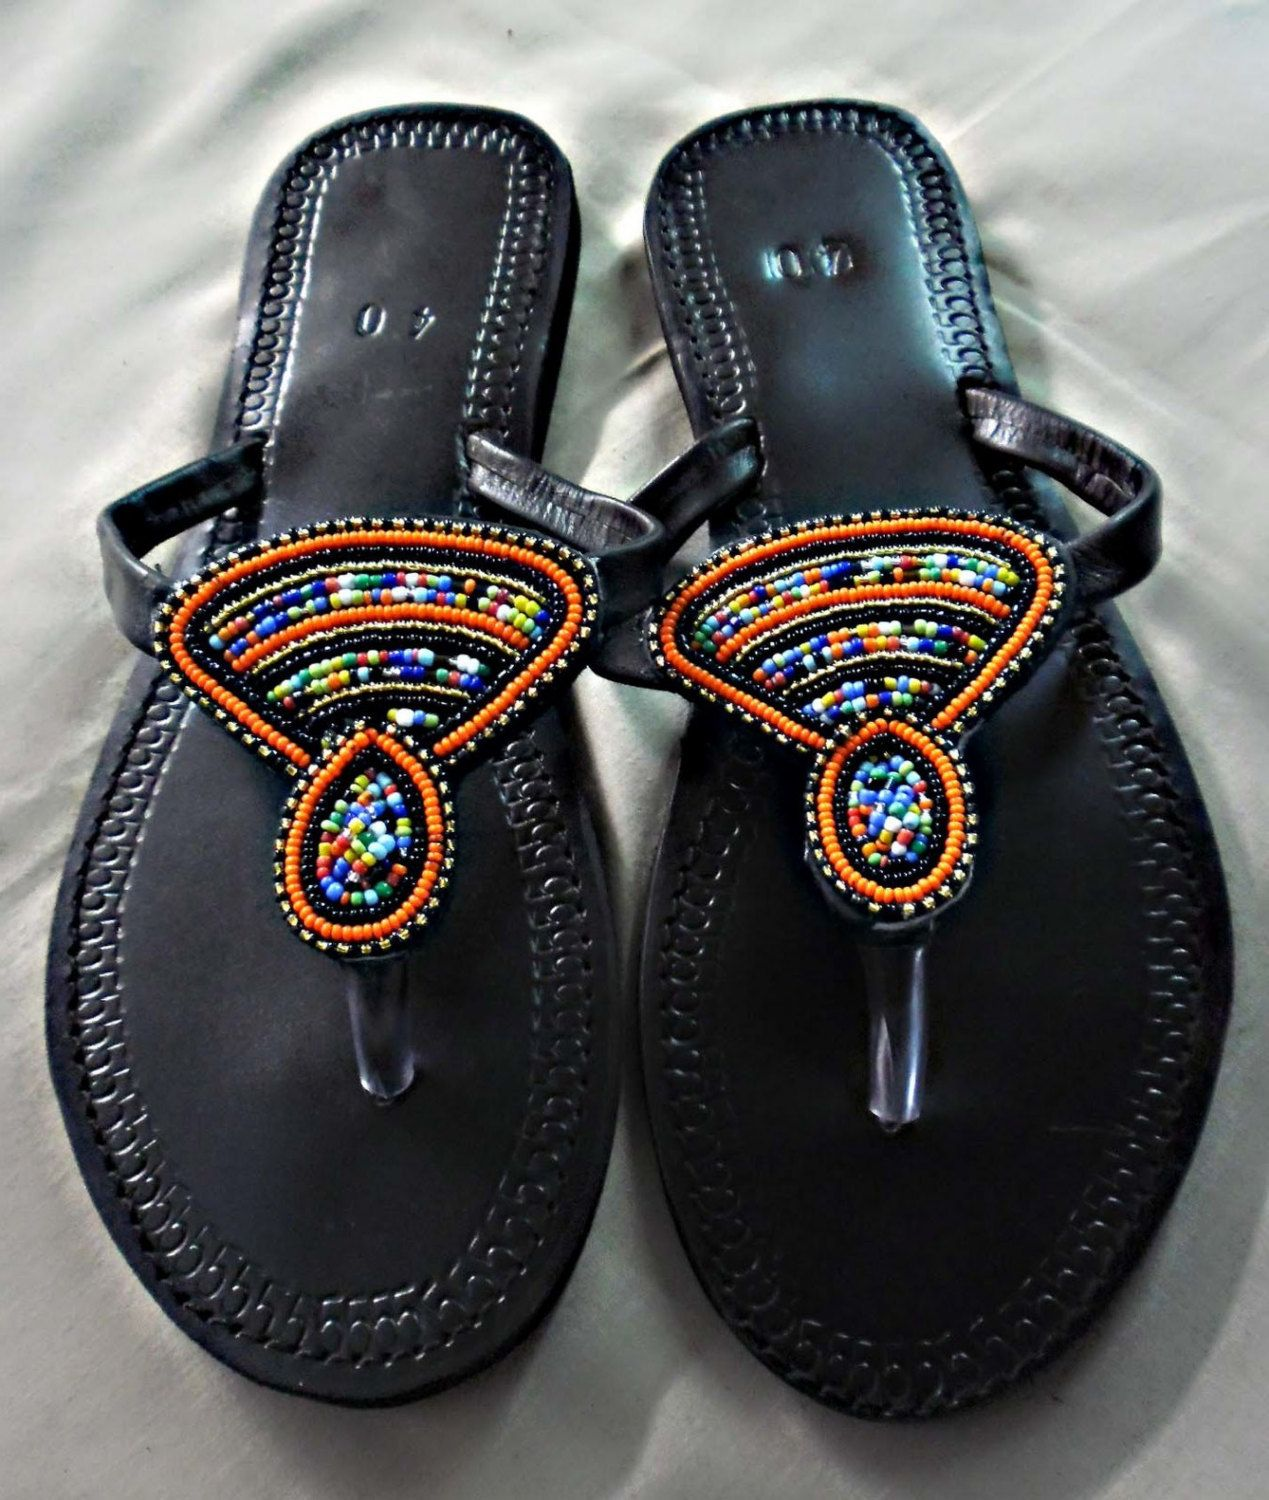 9665e3a83a27 Hand made Kenyan leather slippers with hand beaded artwork. Soft leather  straps that is very comfortable by BITSOFAFRICANCRAFTS on Etsy